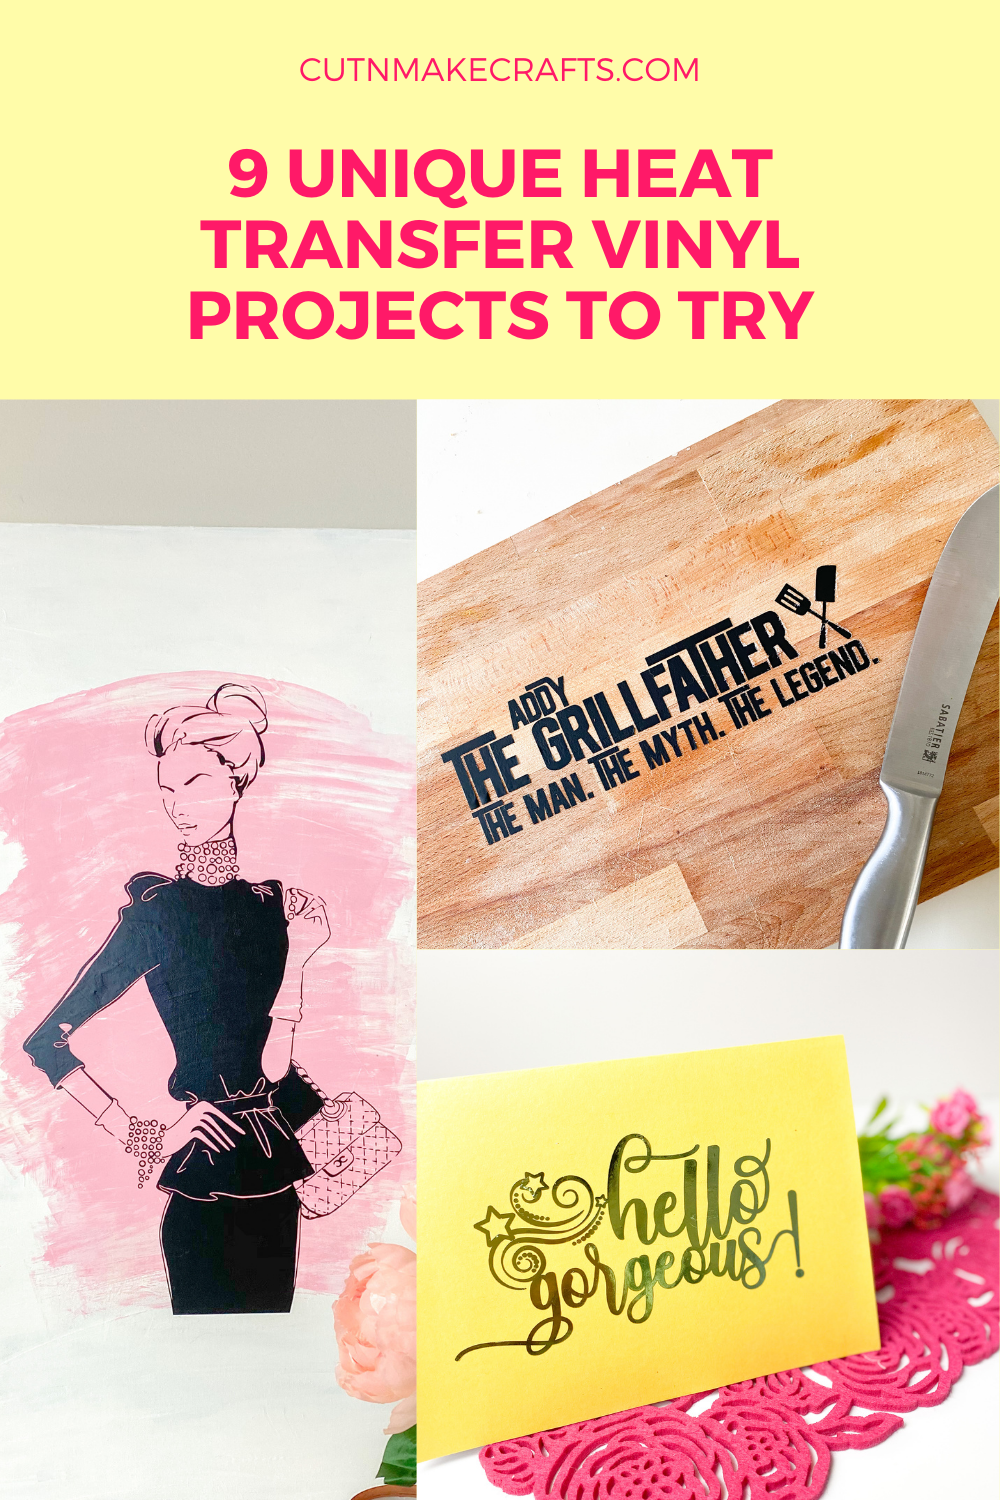 9 Unique Heat Transfer Vinyl Projects To Try Cut N Make Crafts